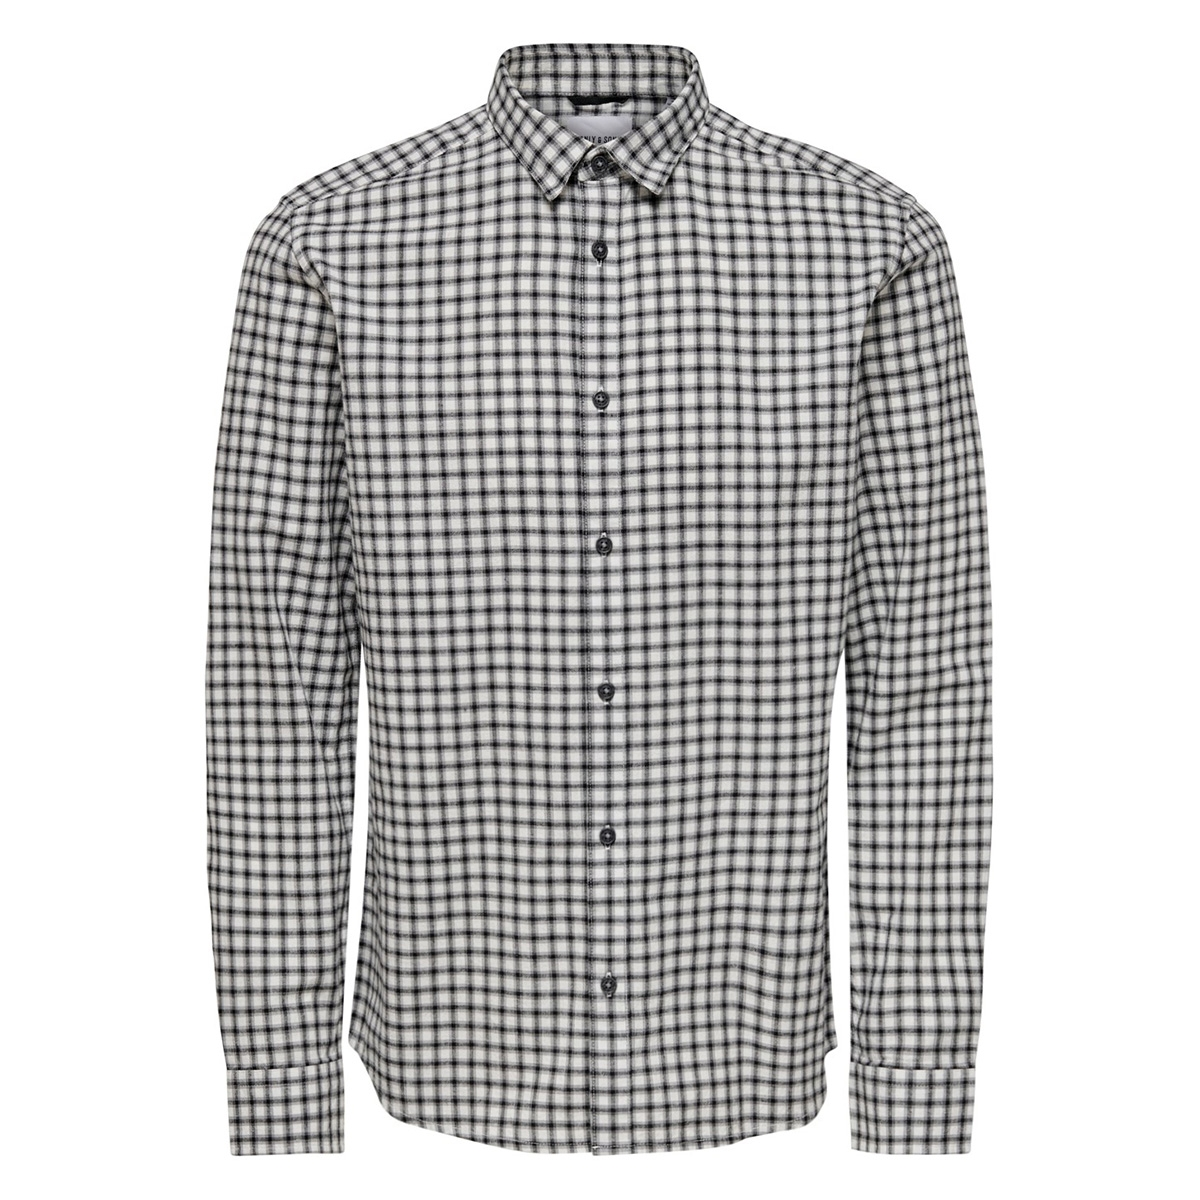 onstony ls yd check shirt re 22012331 only & sons overhemd bright white